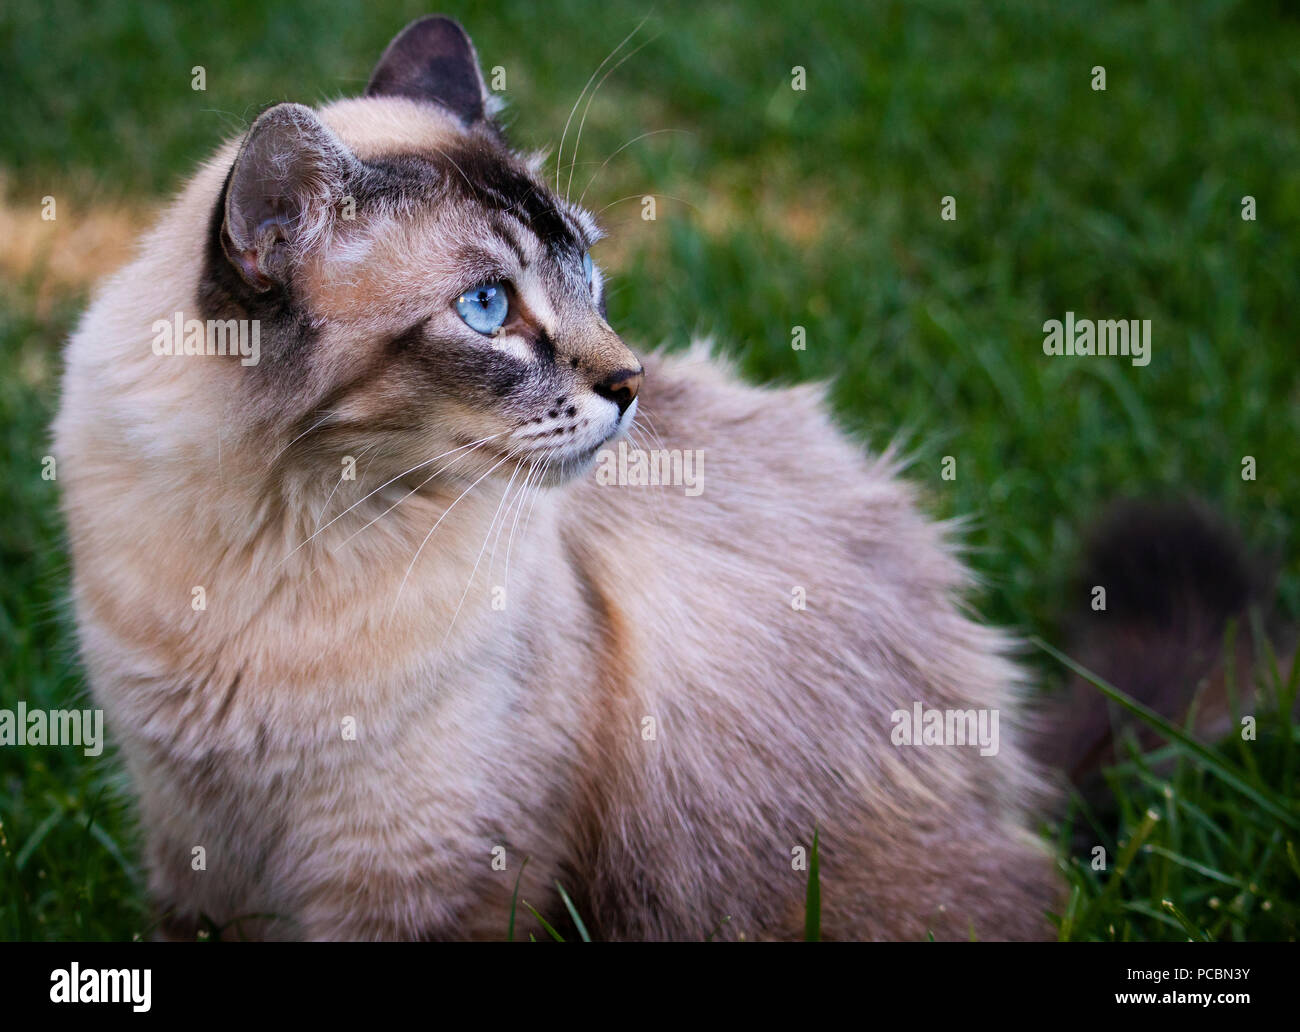 Curious Cat Looking in the Distance - Stock Image